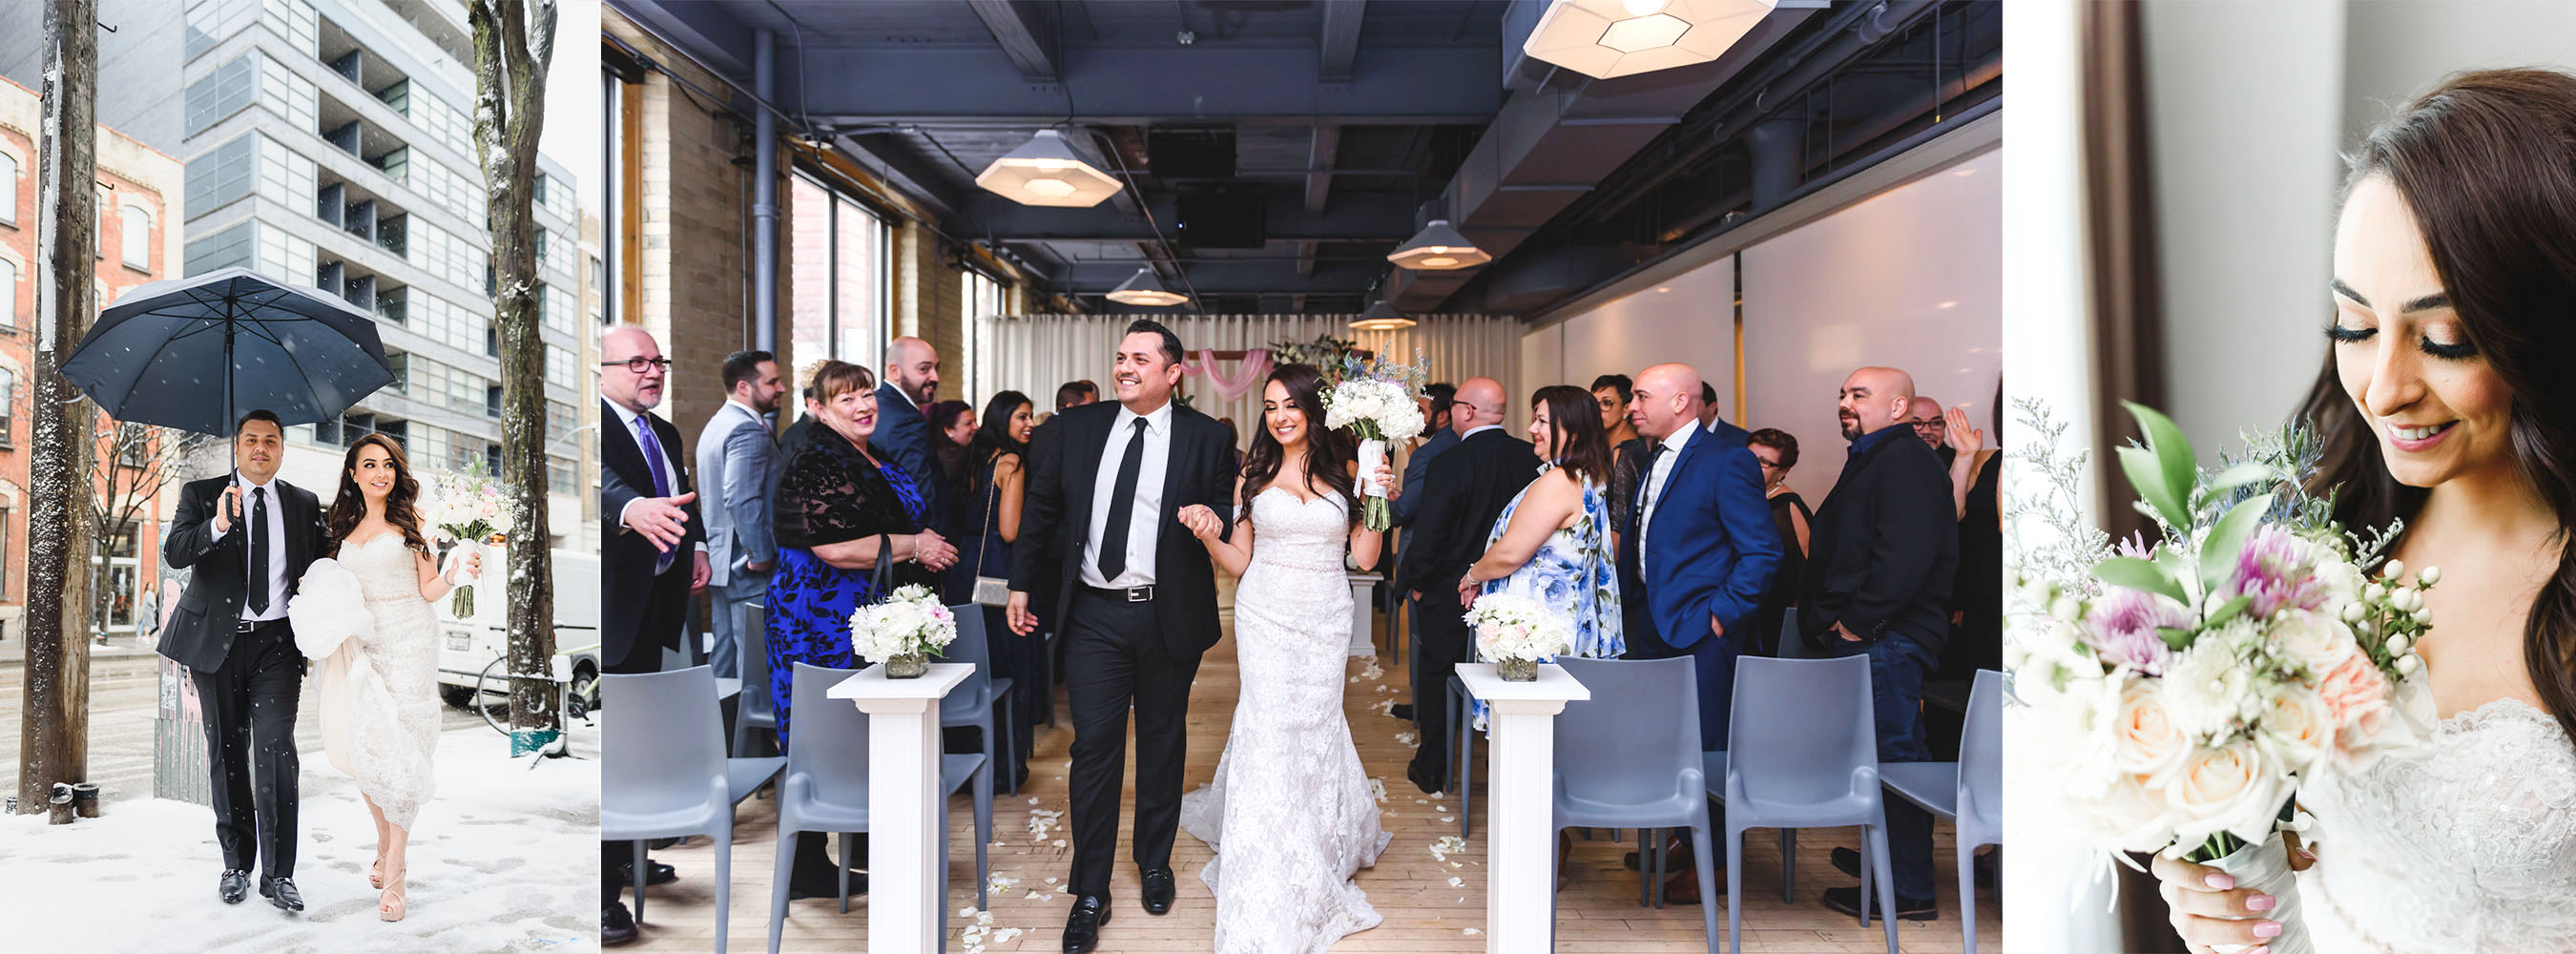 wedding at 2nd Floor Events in Toronto